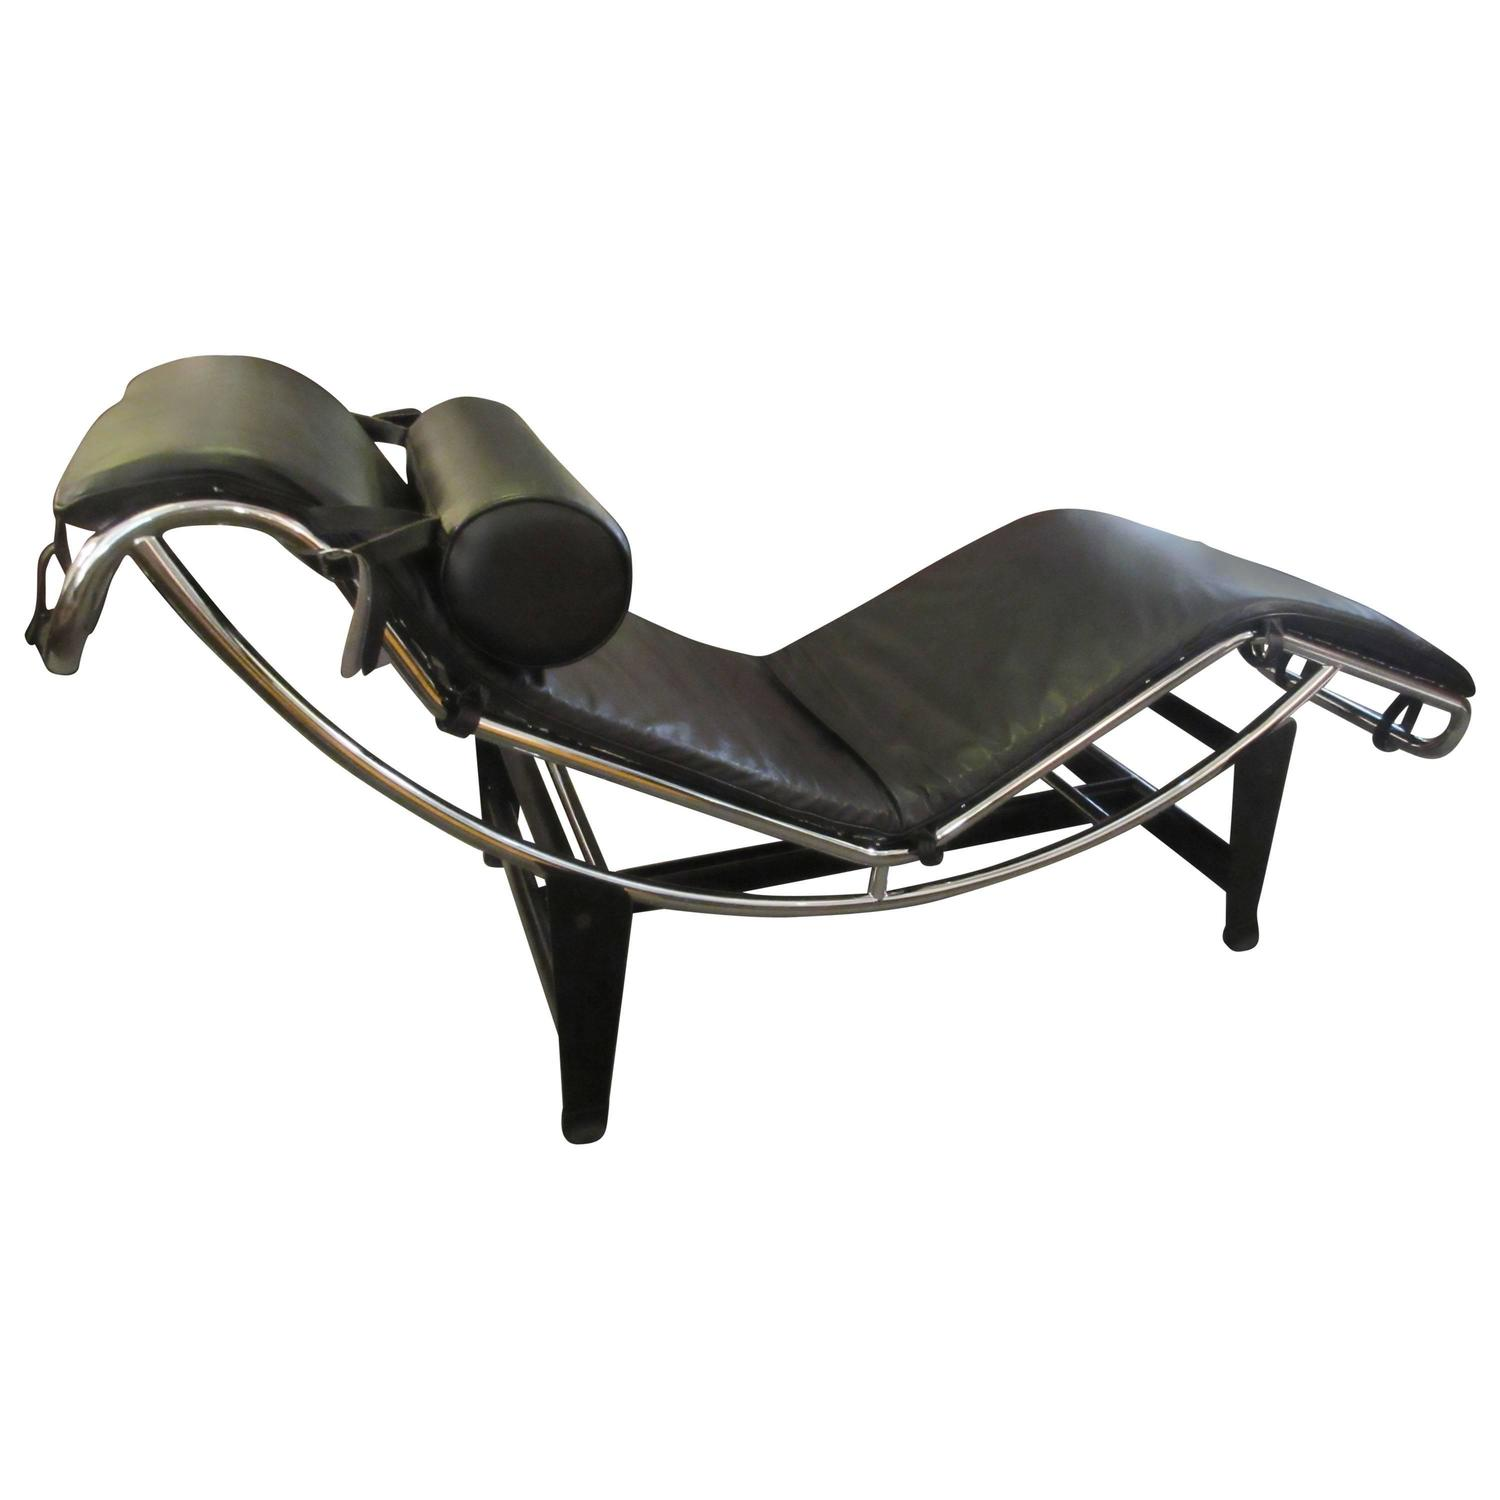 Le corbusier lc4 chrome and leather chaise longue at 1stdibs for Chaise longue de le corbusier